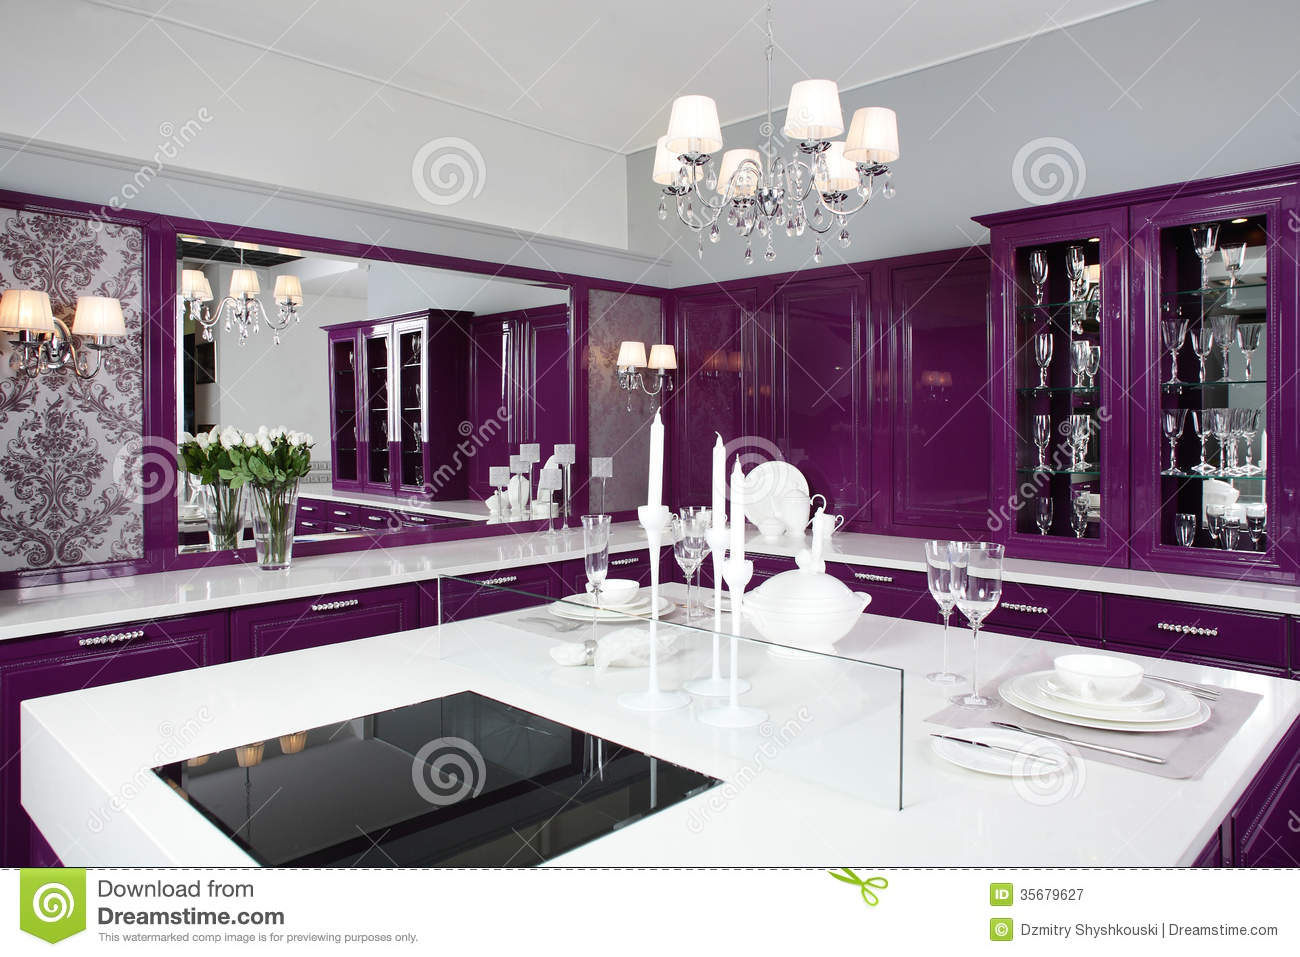 Modern purple kitchen with stylish furniture royalty free for Stylish furniture